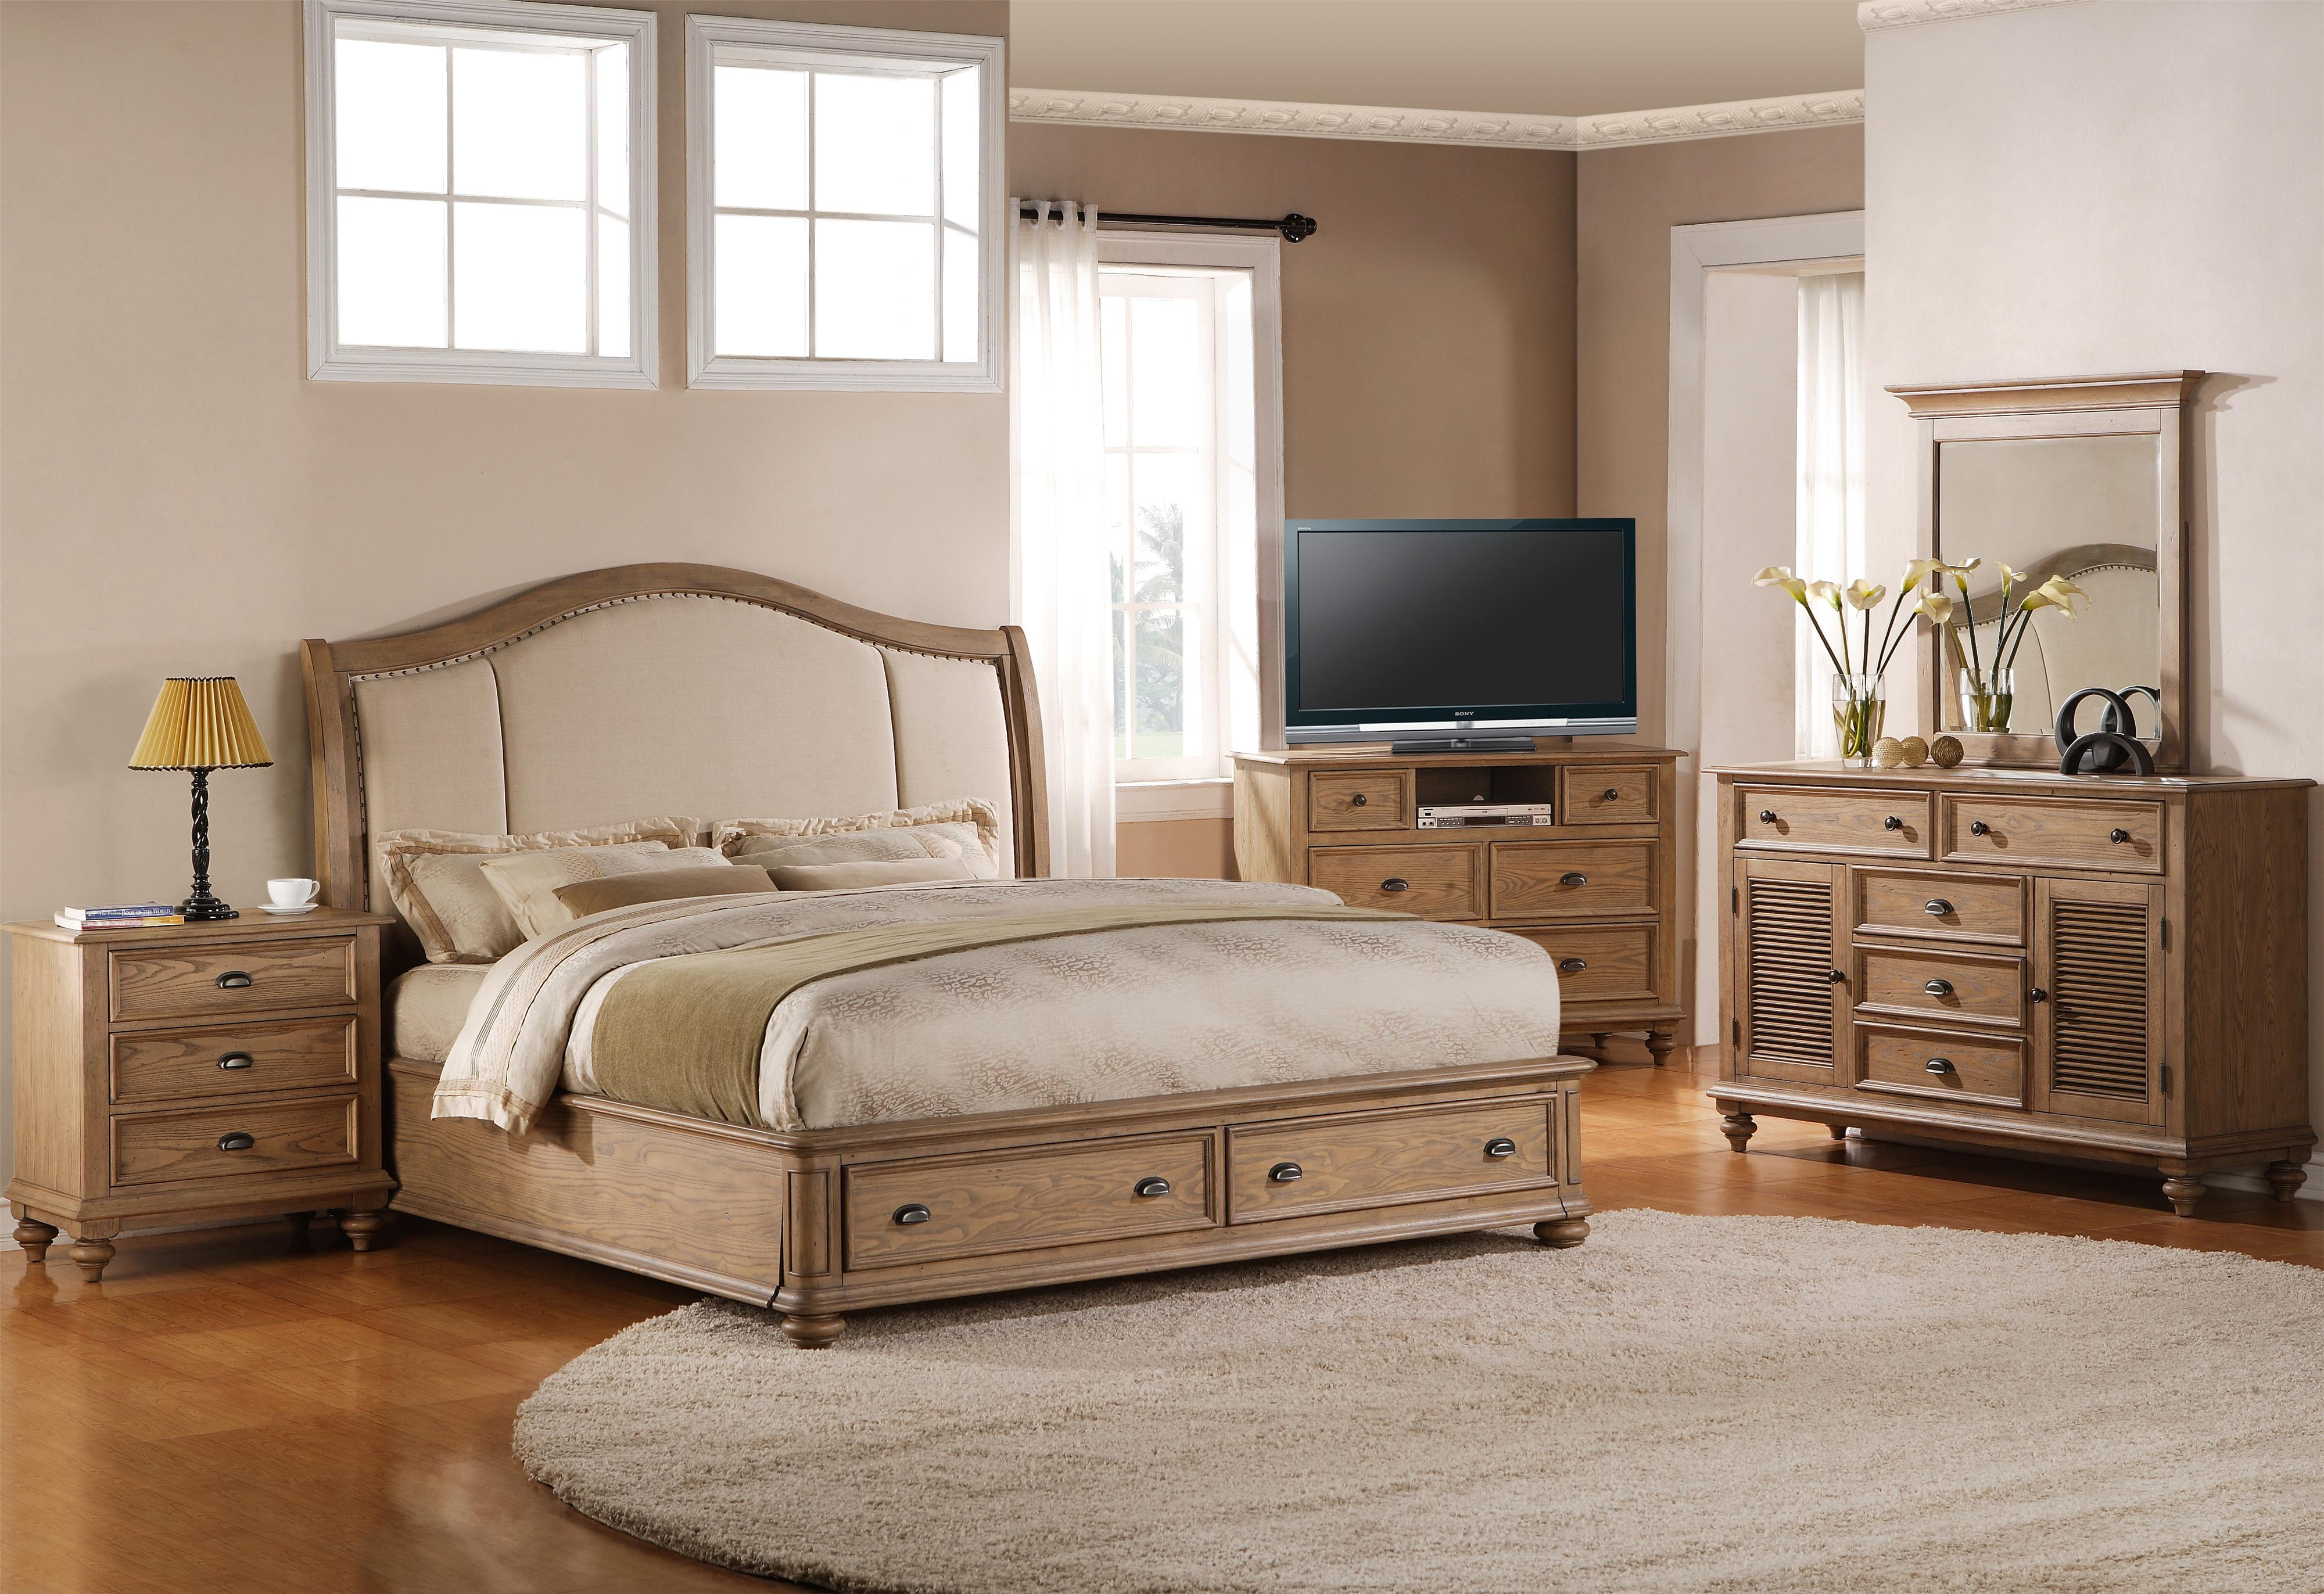 Riverside Furniture Coventry King Bedroom Group - Item Number: 32400 K Bedroom Group 10